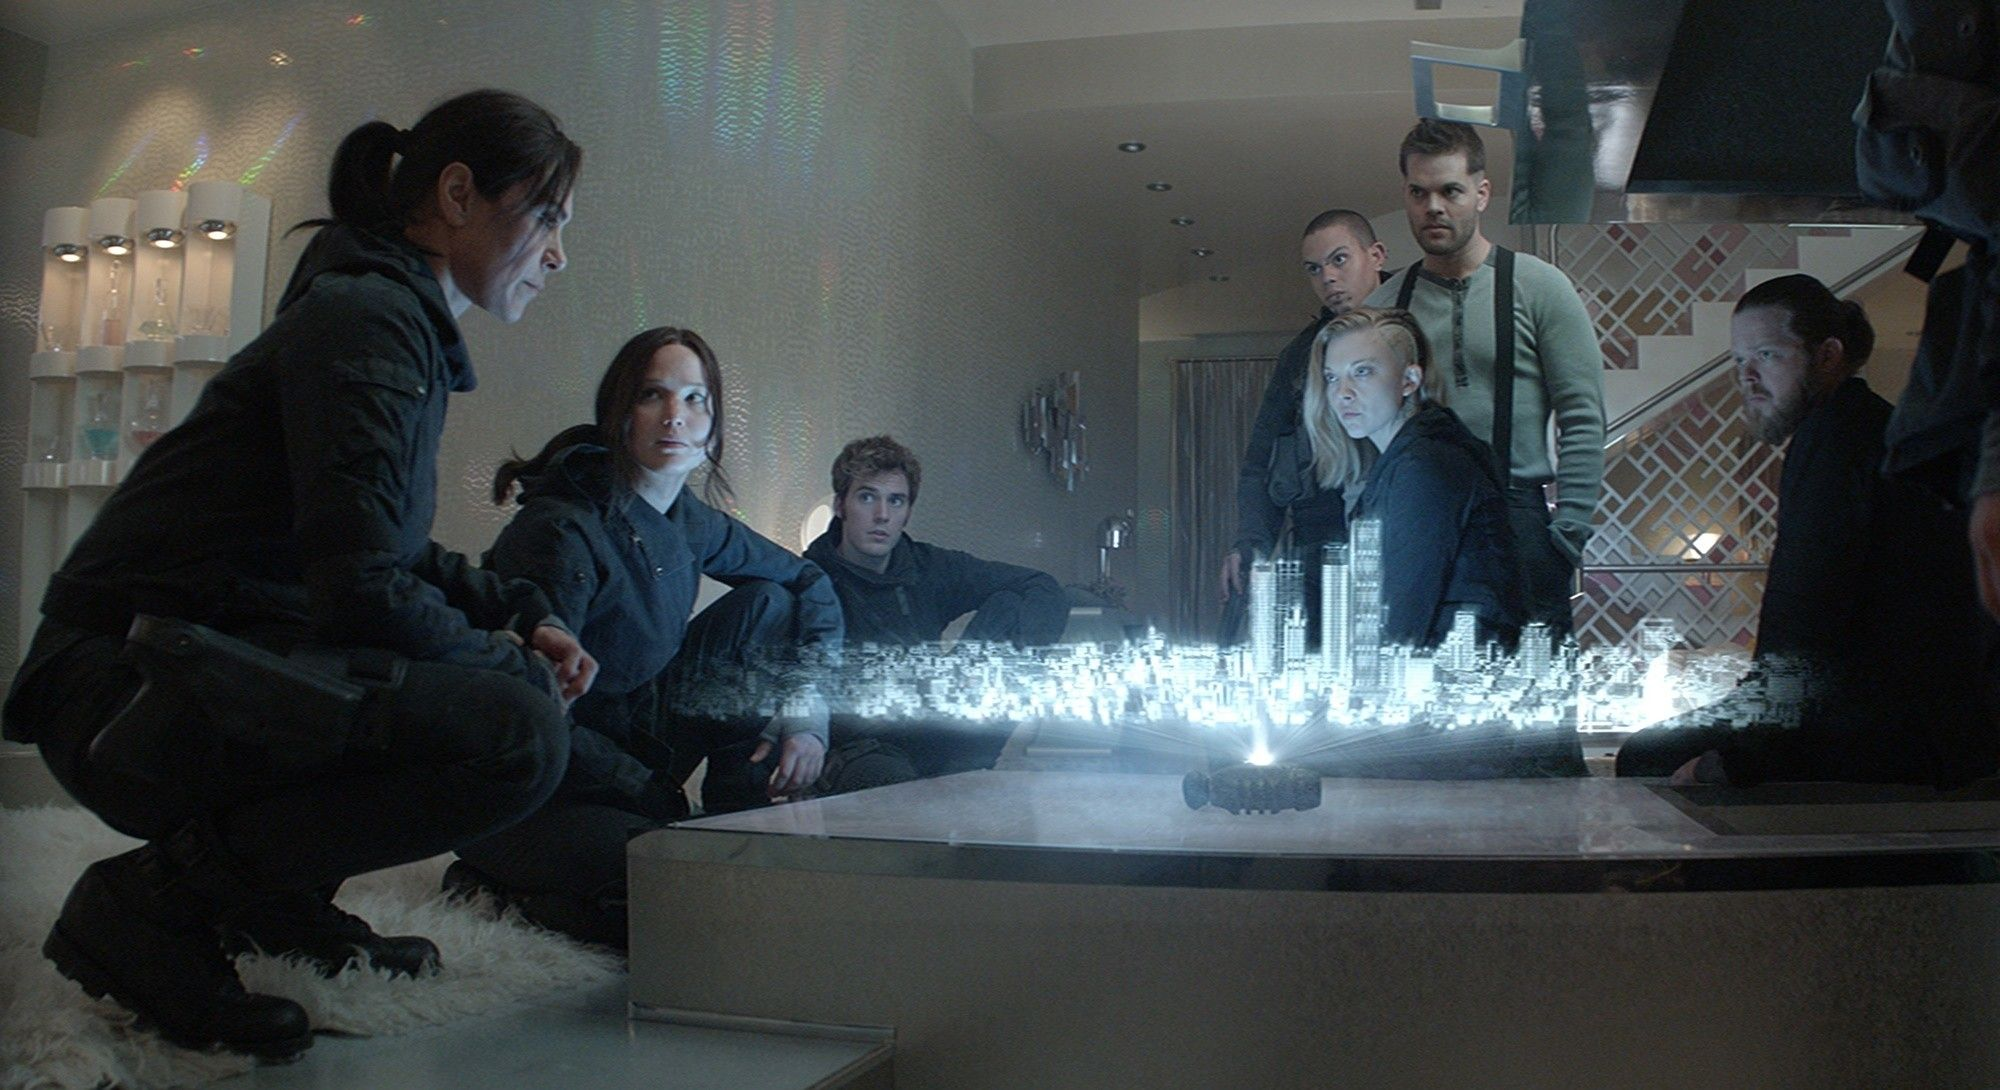 Does Mockingjay by Suzanne Collins have a complex plot?